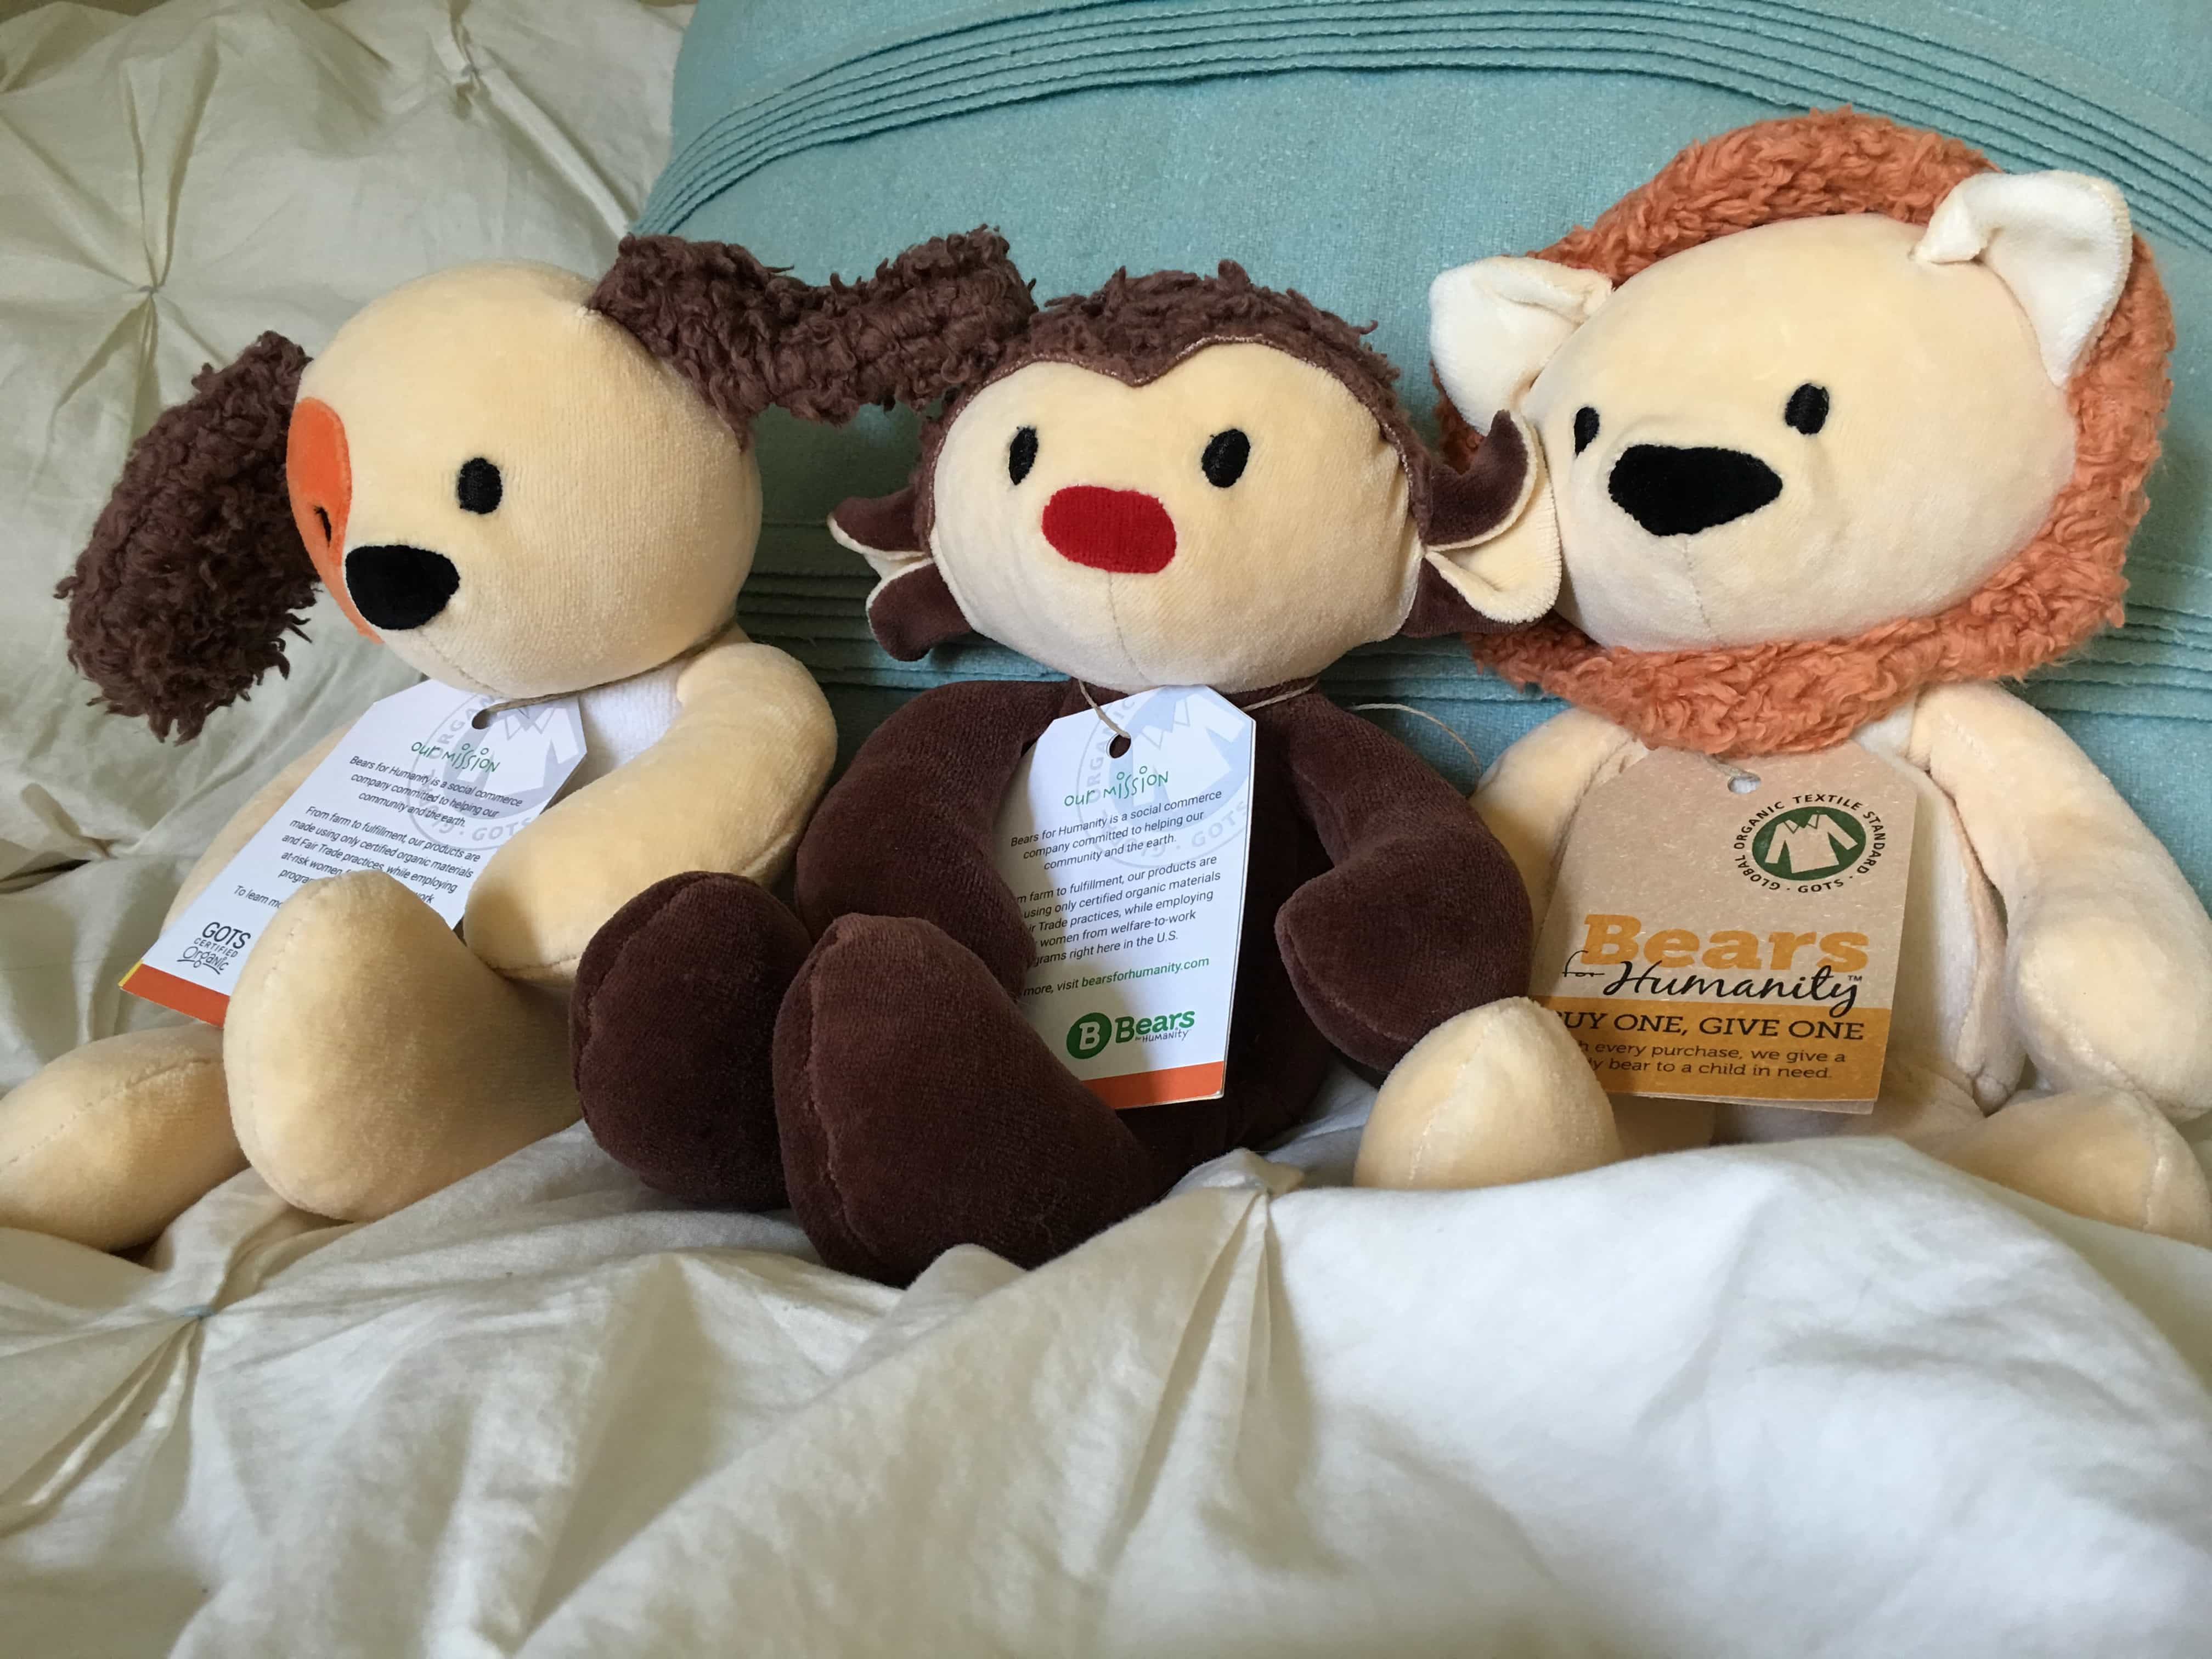 GIfts that give: Bears for Humanity Animal Pals Collection